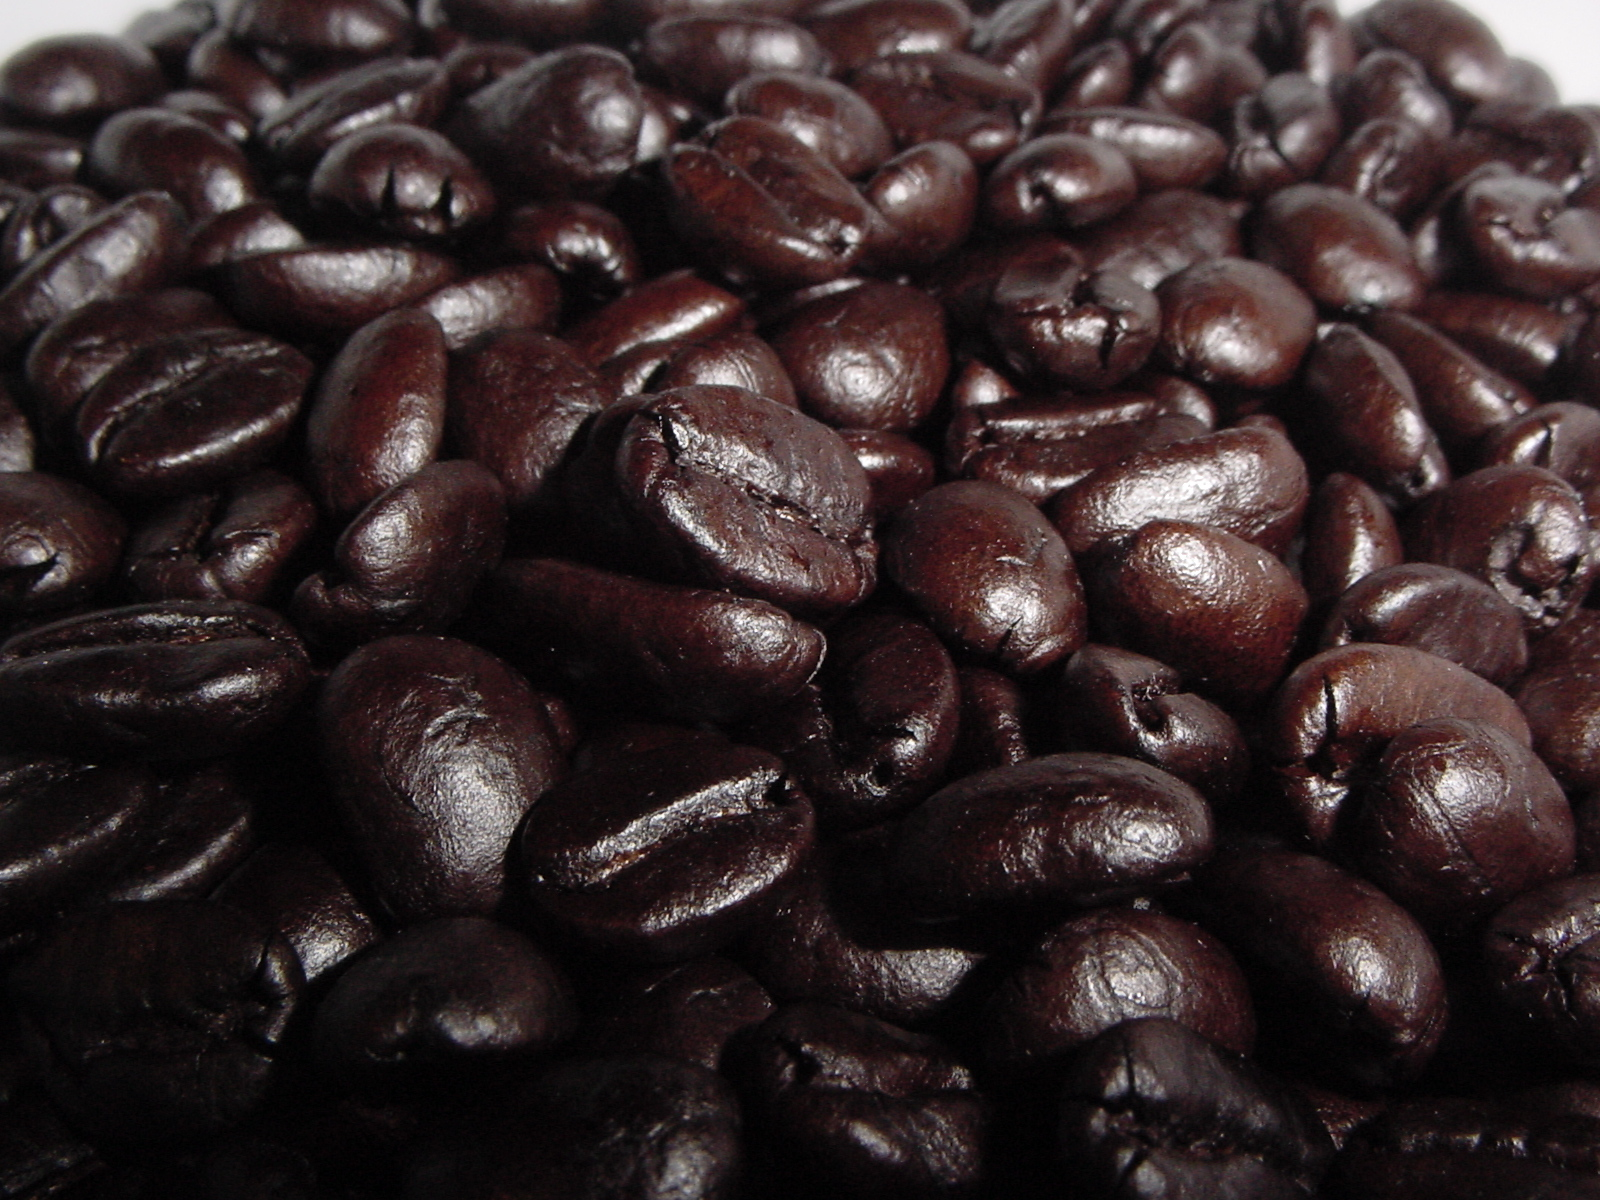 File:Coffee Beans closeup.jpg - Wikipedia